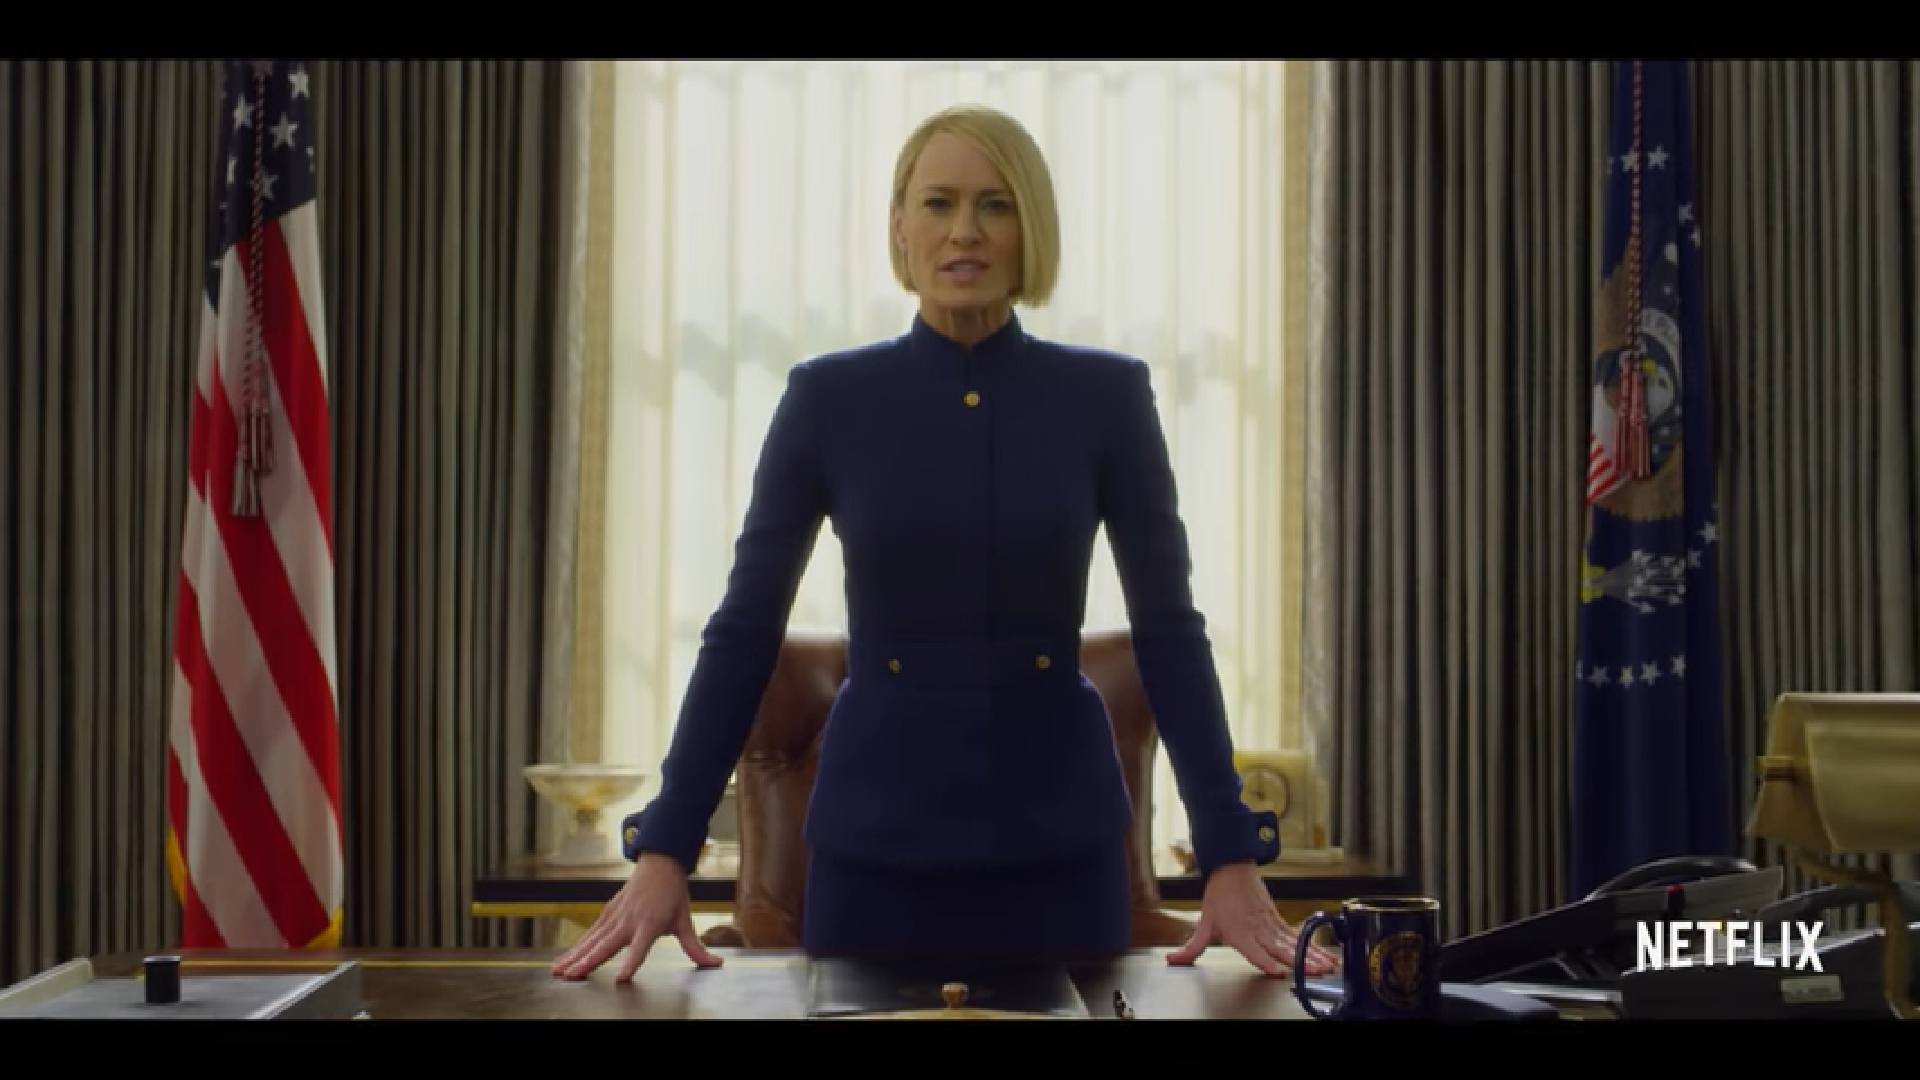 Netflix S House Of Cards Season 6 Will Focus On Claire Underwood S